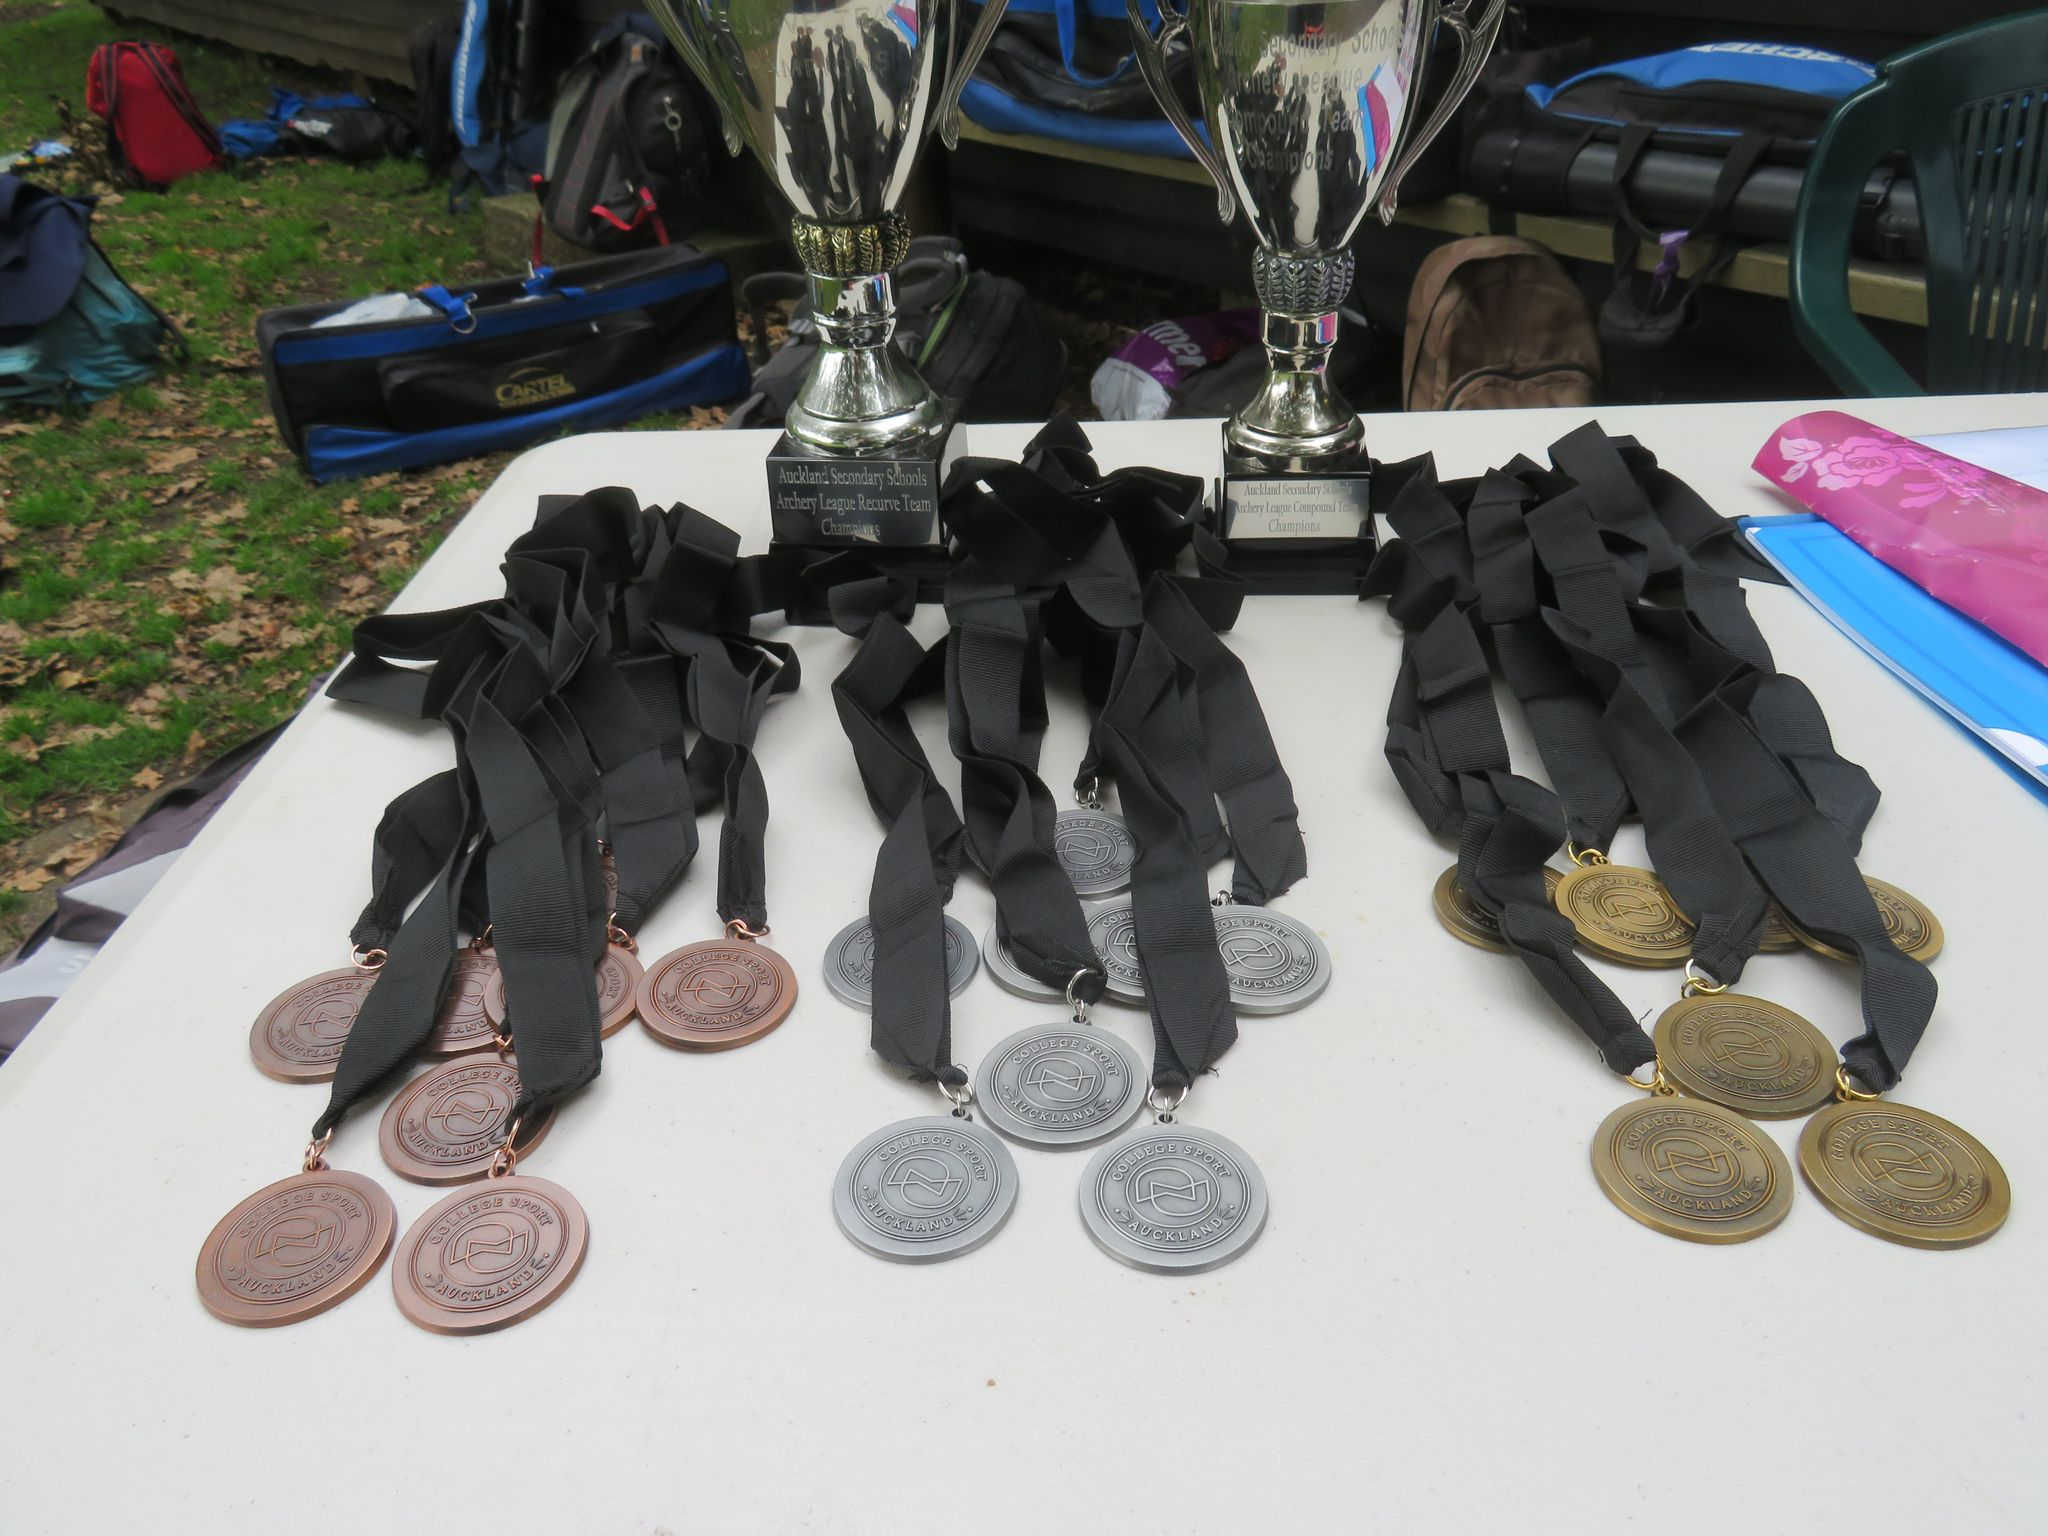 Medals for youth archers